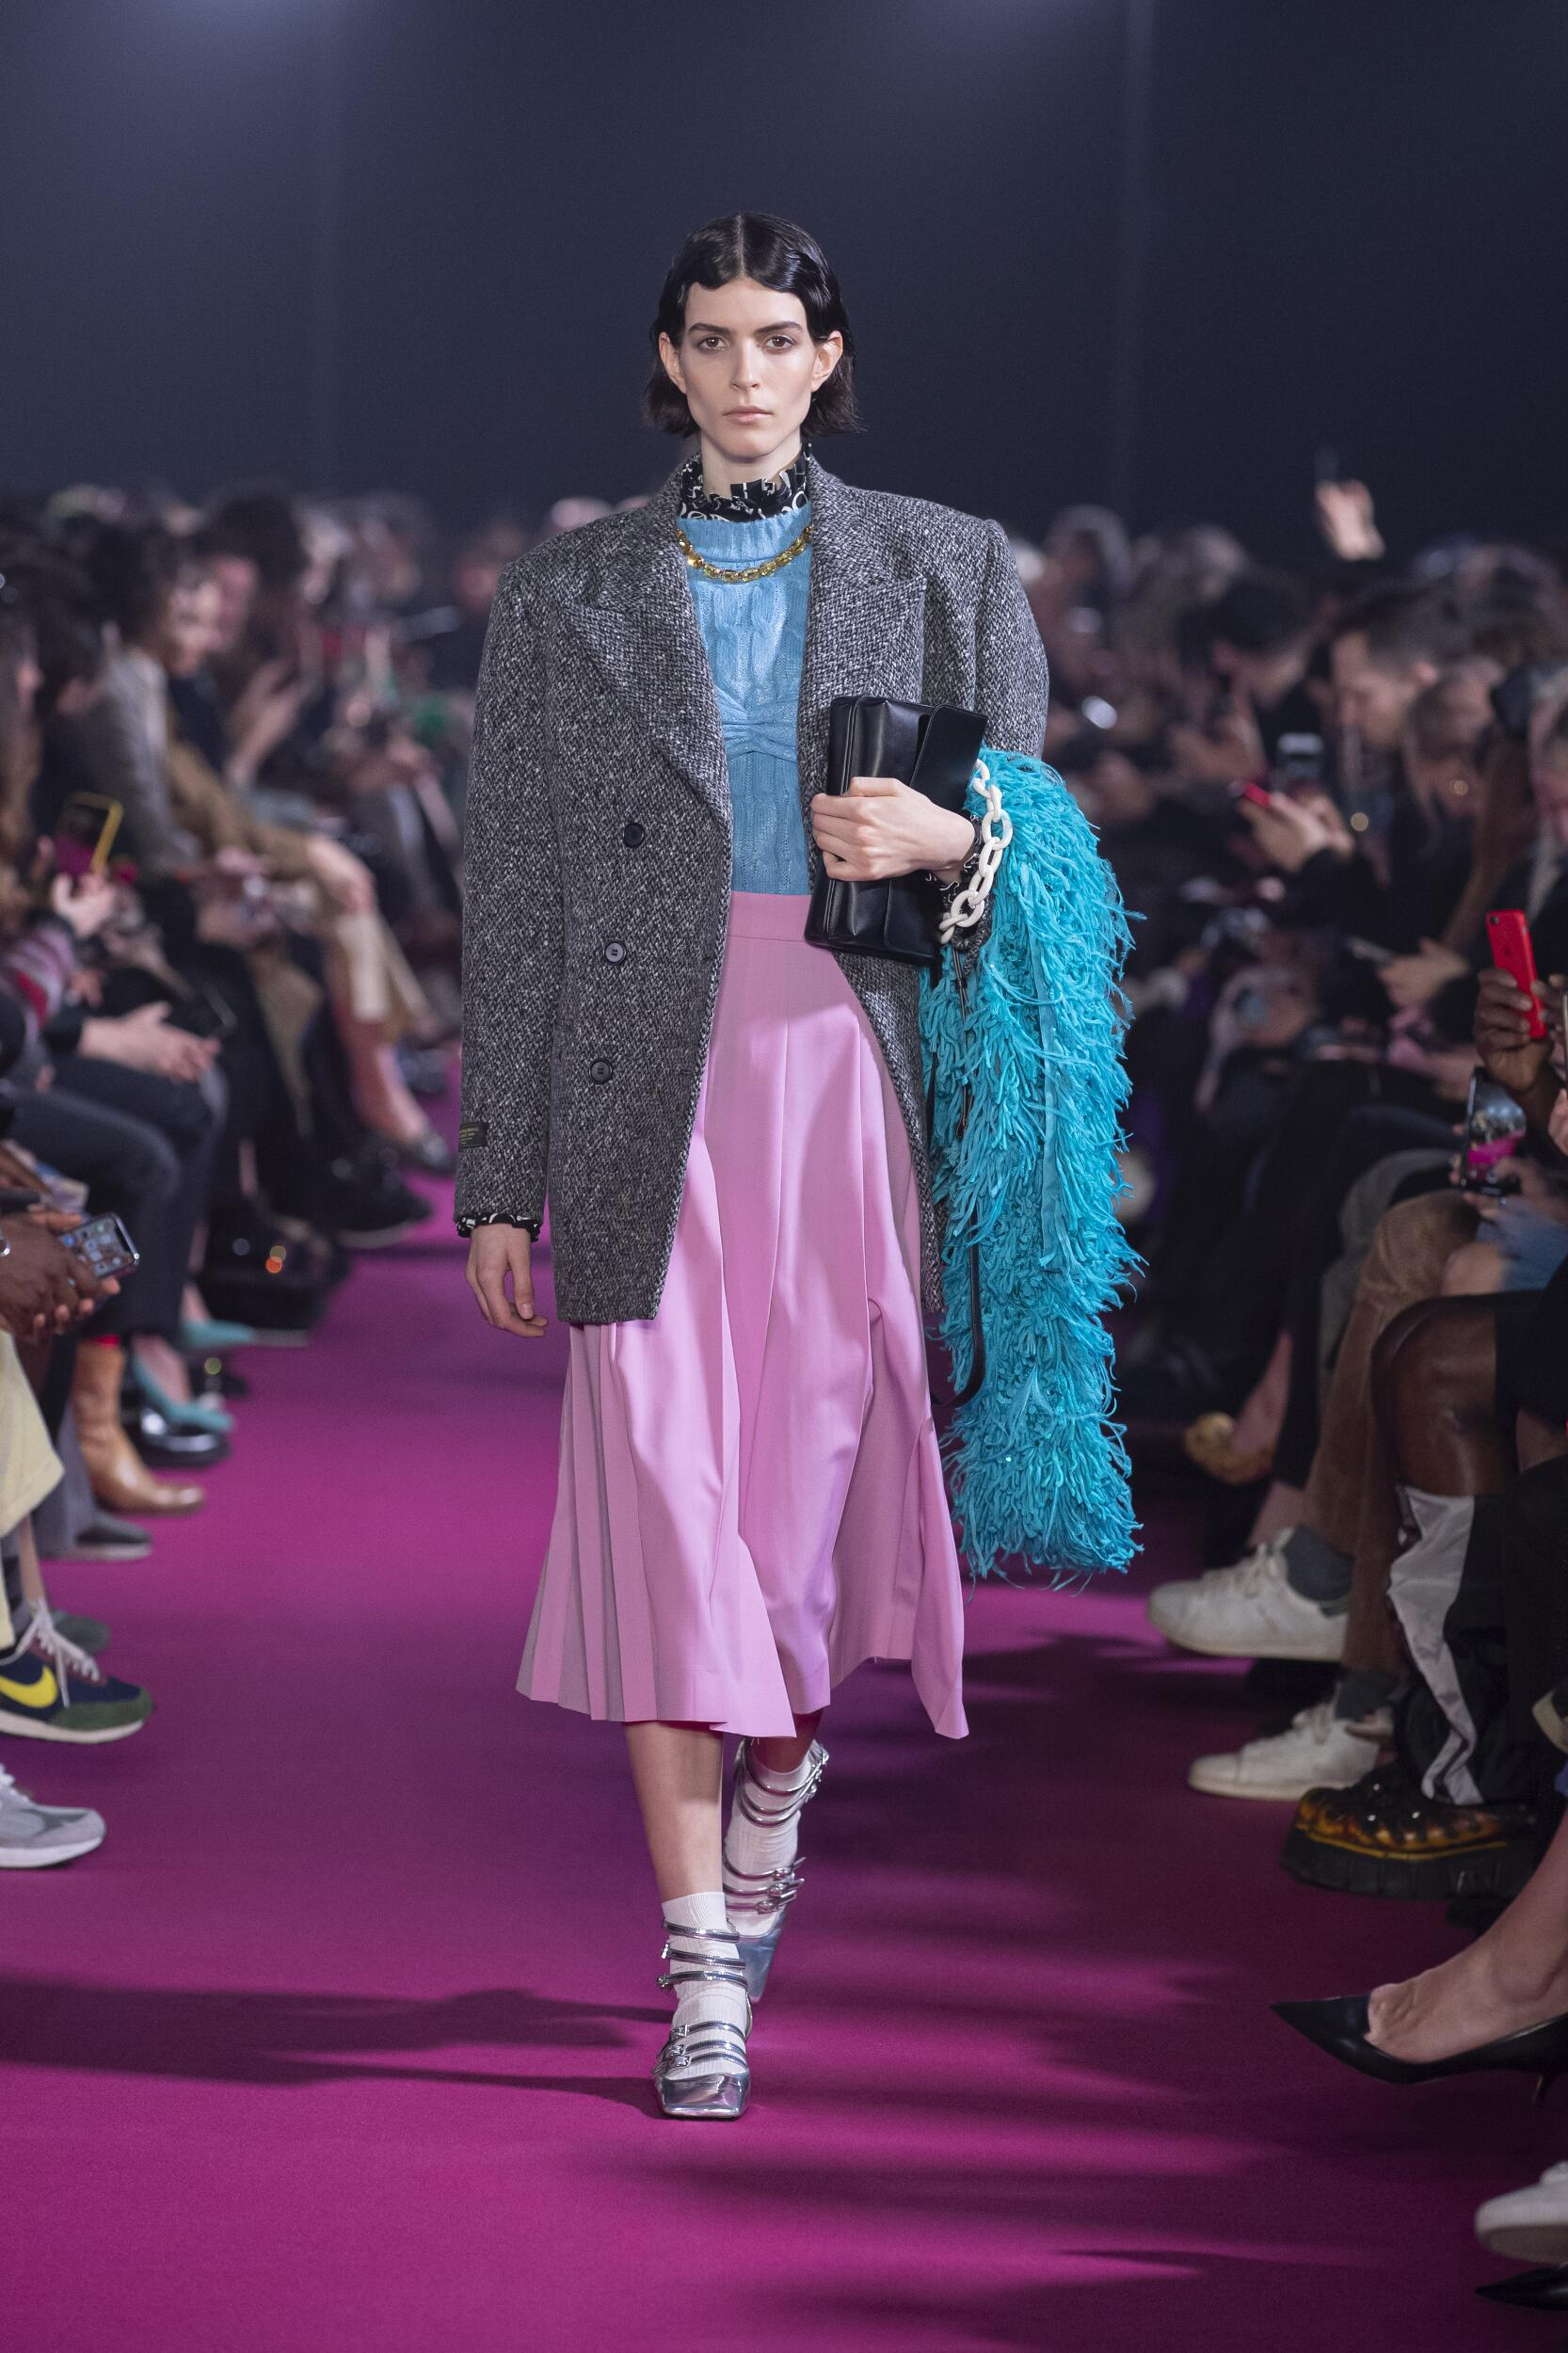 FW 2020-21 MSGM Fashion Show